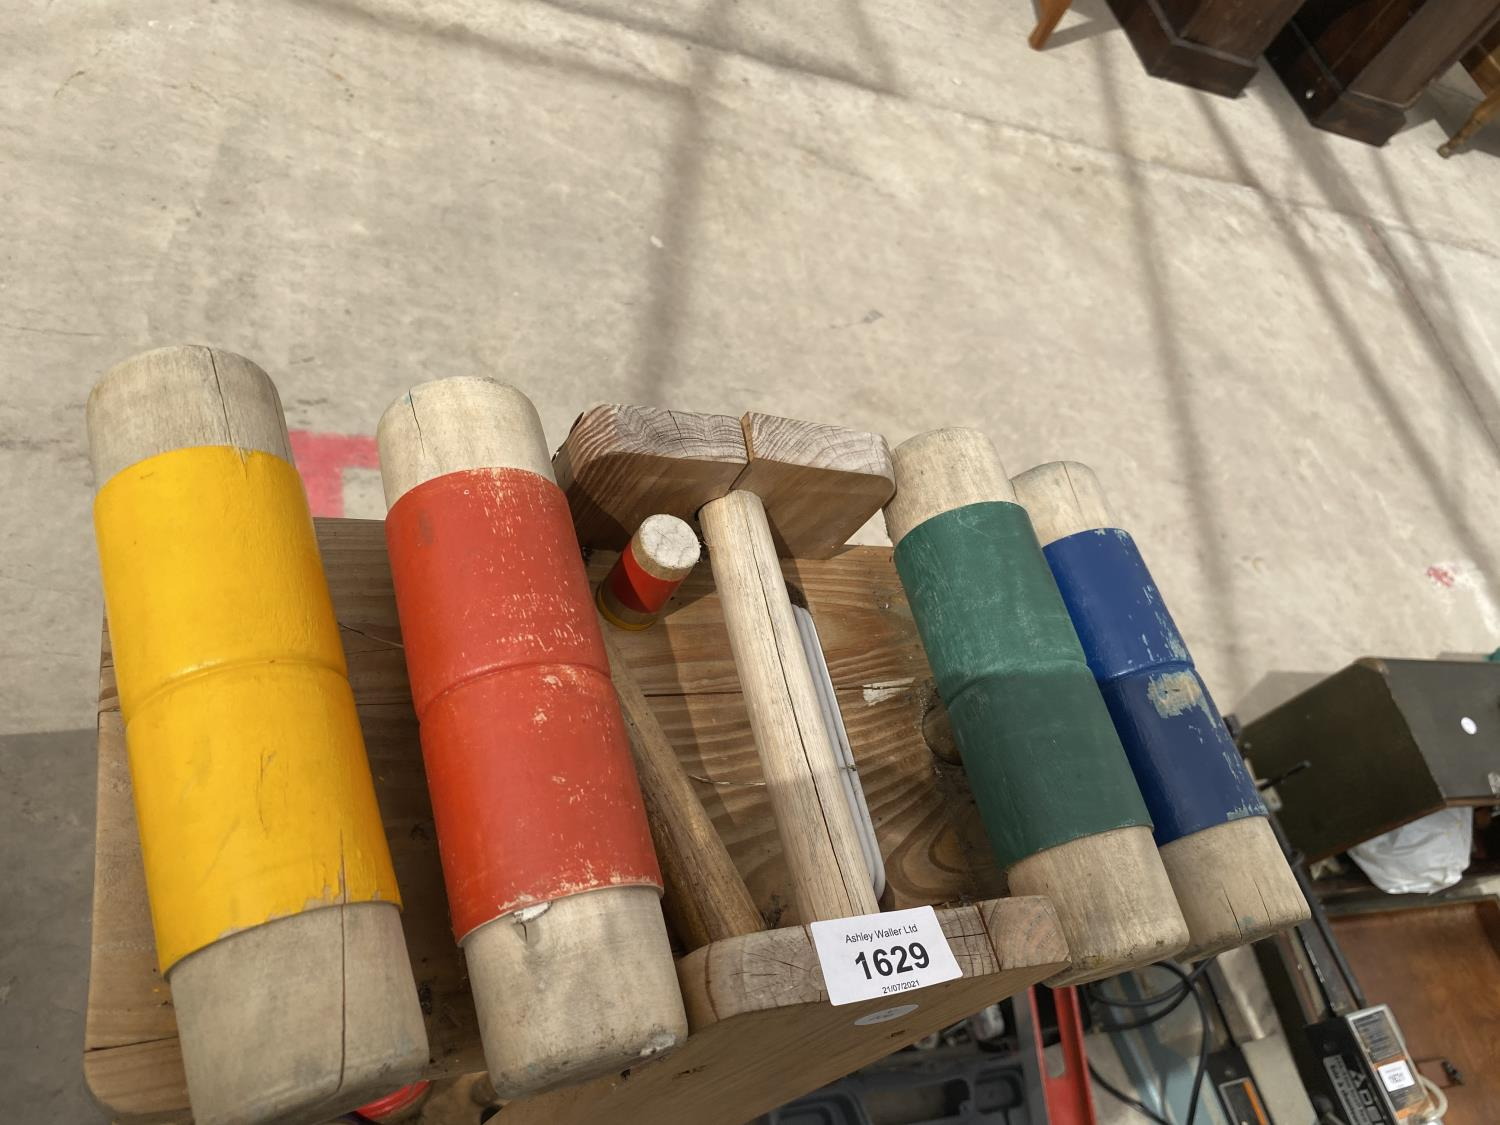 A CROQUET SET (MISSING ONE BALL) - Image 2 of 3